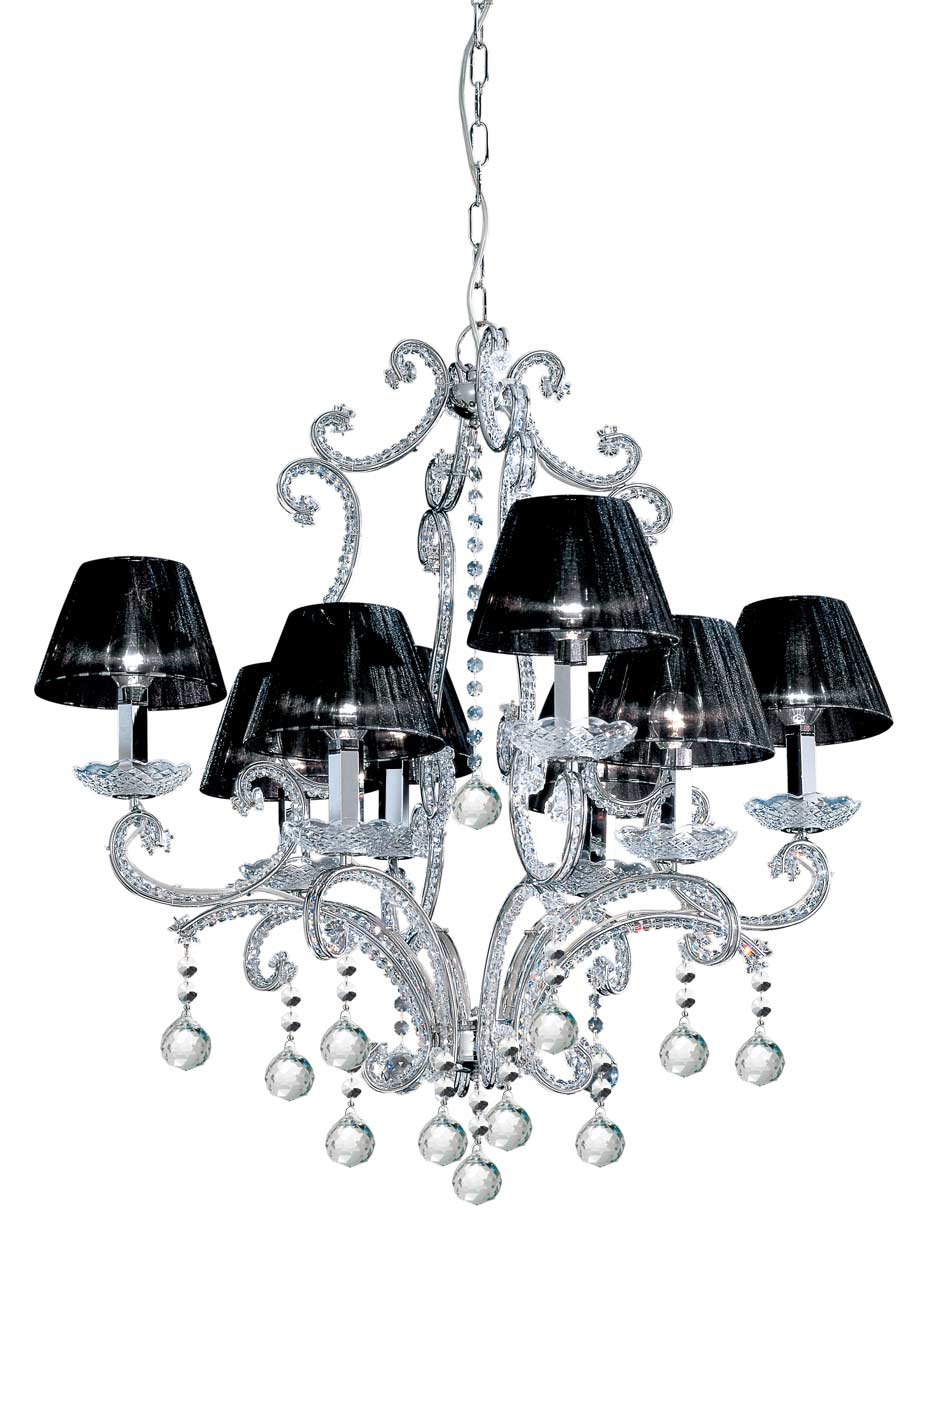 8 light chrome and crystal chandelier with black silk shades 8 light chrome and crystal chandelier with black silk shades masiero arubaitofo Images